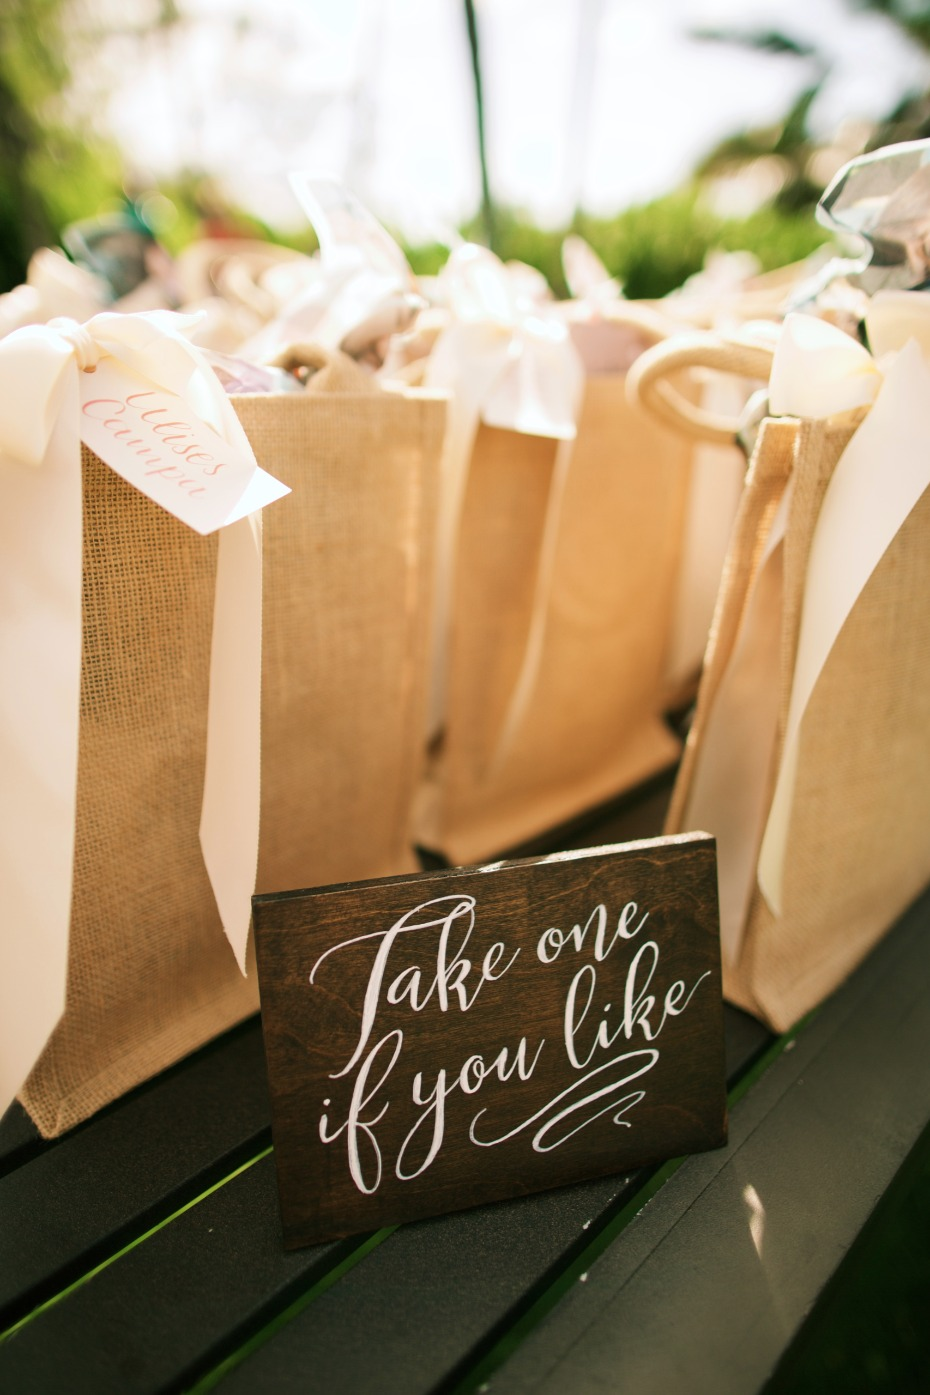 Cute favor bags for guests